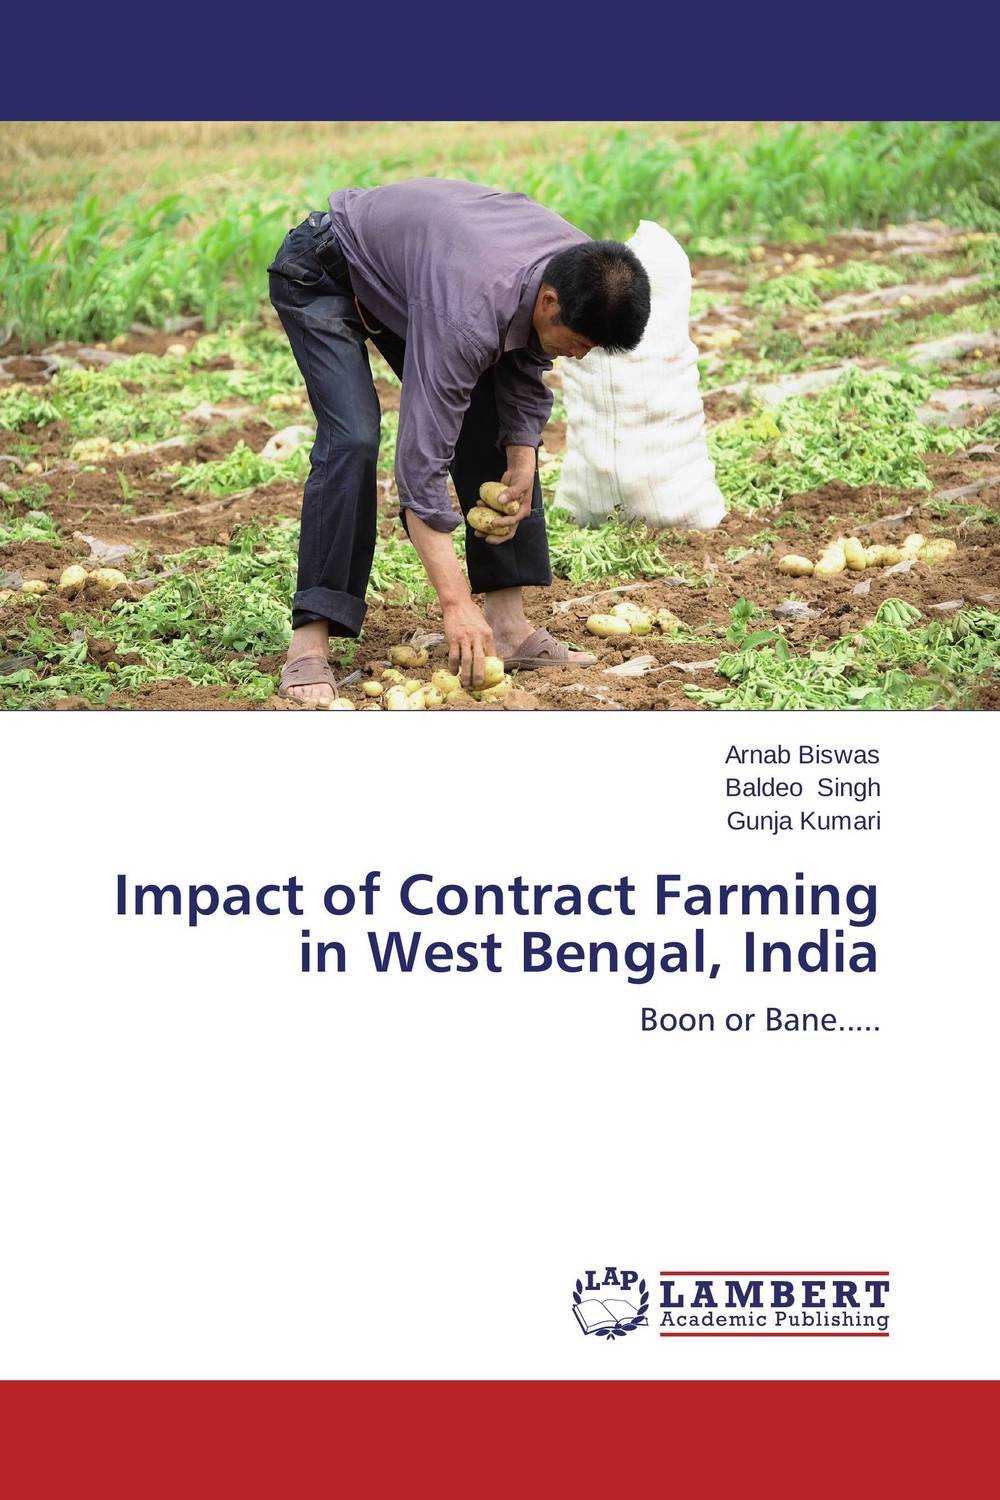 Impact of Contract Farming in West Bengal, India